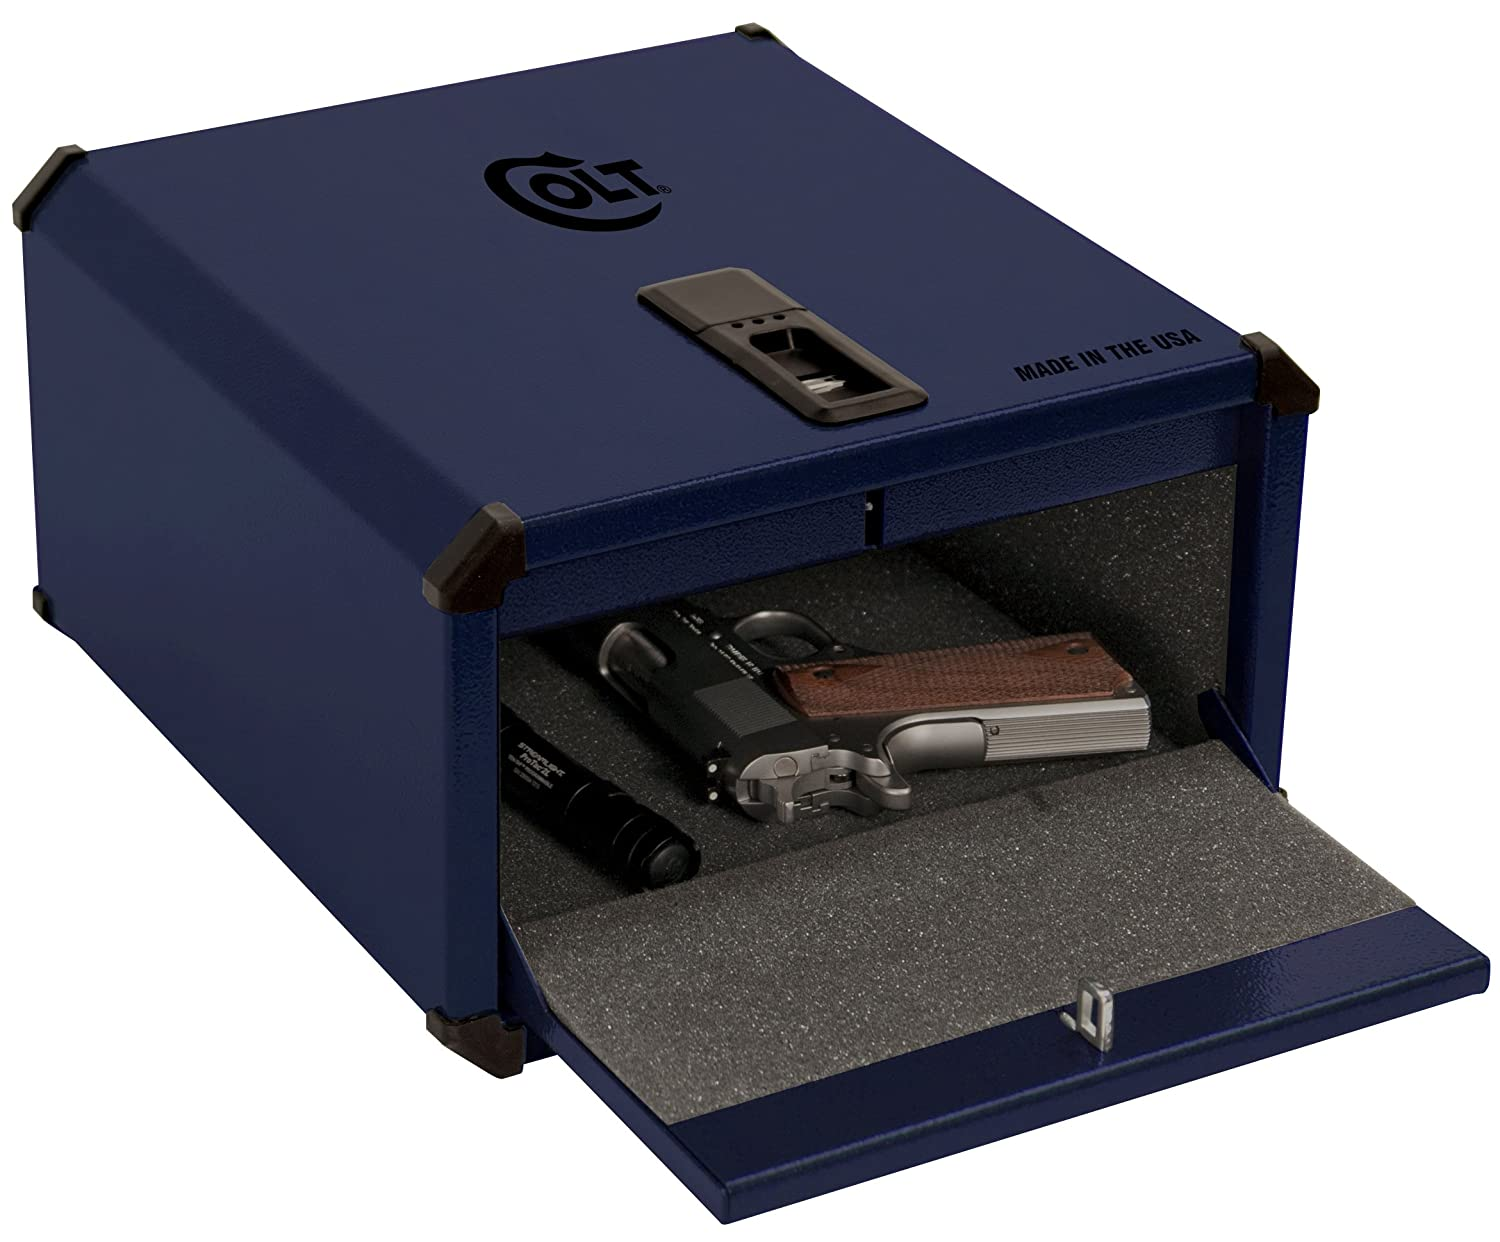 Image result for Liberty HDX-250 Star Vault Safe